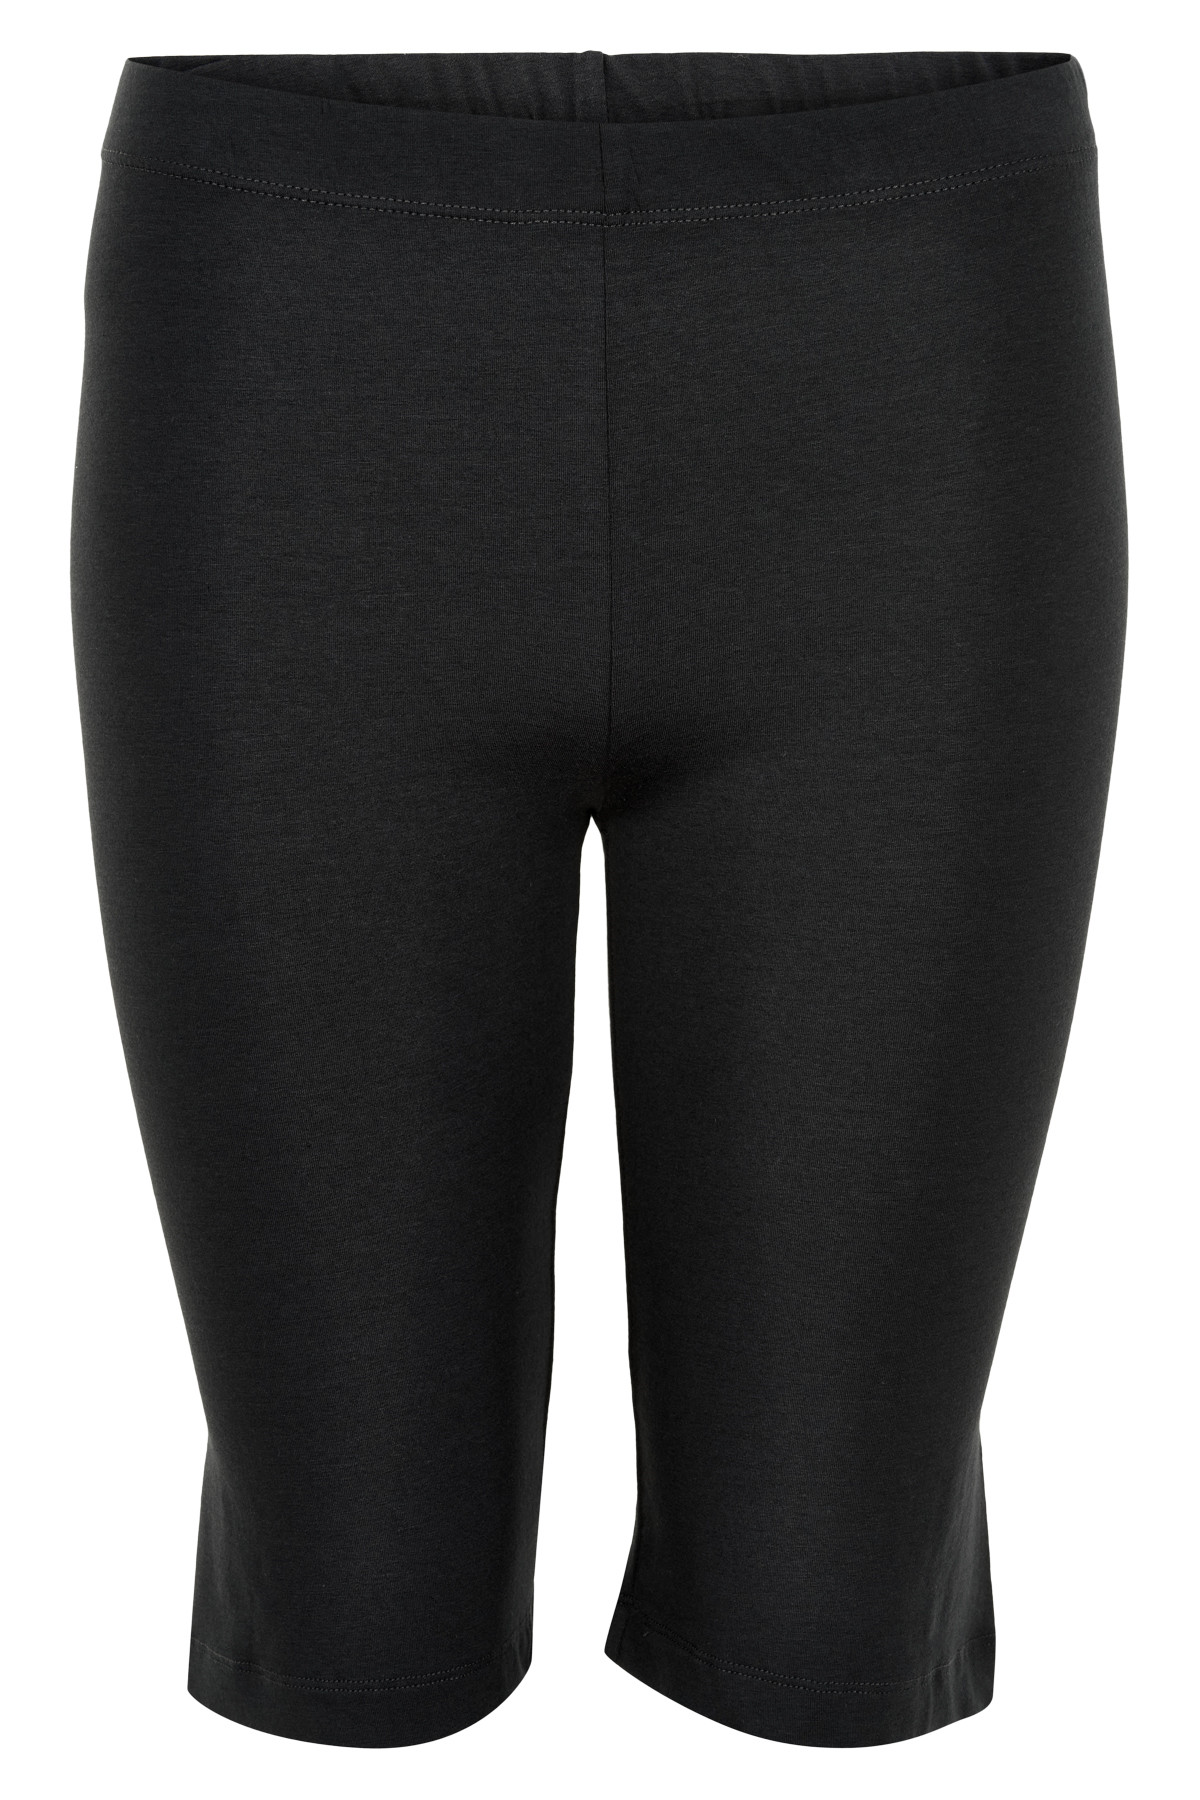 NOA NOA SHORT LEGGINGS 1-9435-2 00000 (Black, XXS)